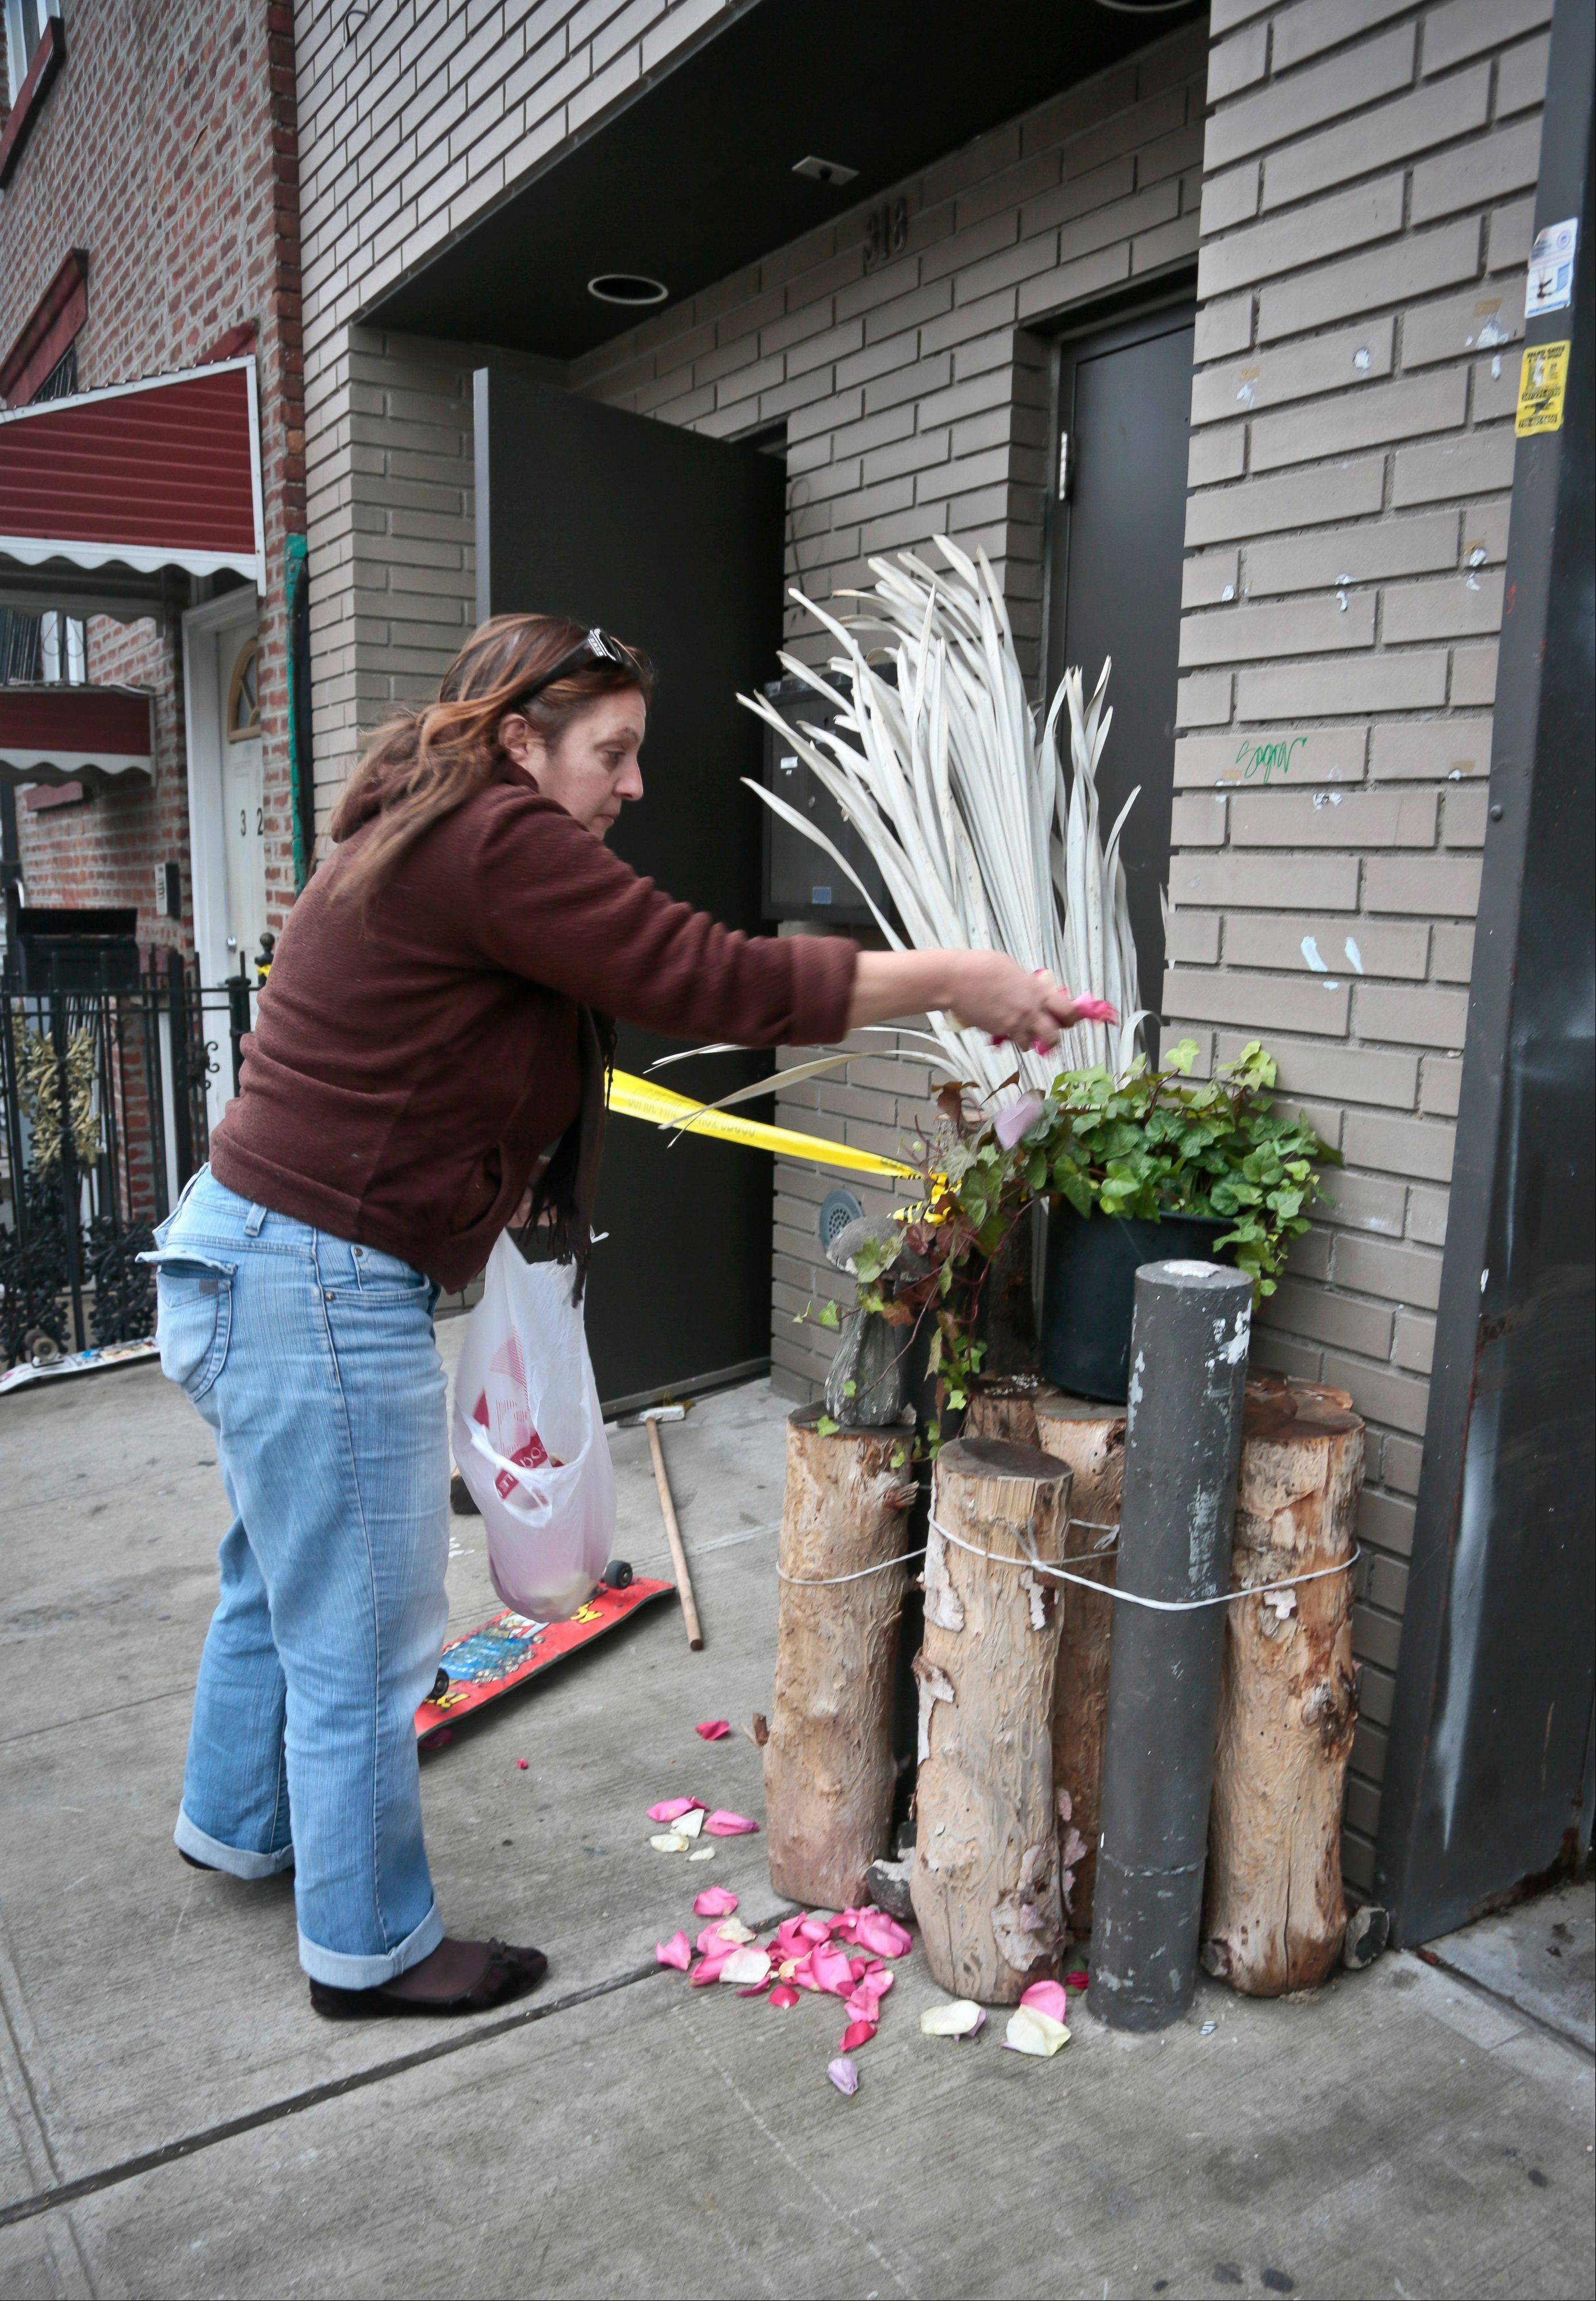 Joanne Bascetta scatters flower petals outside the apartment that was scene of a Monday shooting rampage, Tuesday, Nov. 12, 2013 in Brooklyn, New York. Police said gunman Ali Akbar Mahammadi Rafie, 29, a musician, killed himself on the roof after shooting to death two members of the Iranian indie rock band Yellow Dogs, a third musician and wounding a fourth person early Monday morning.